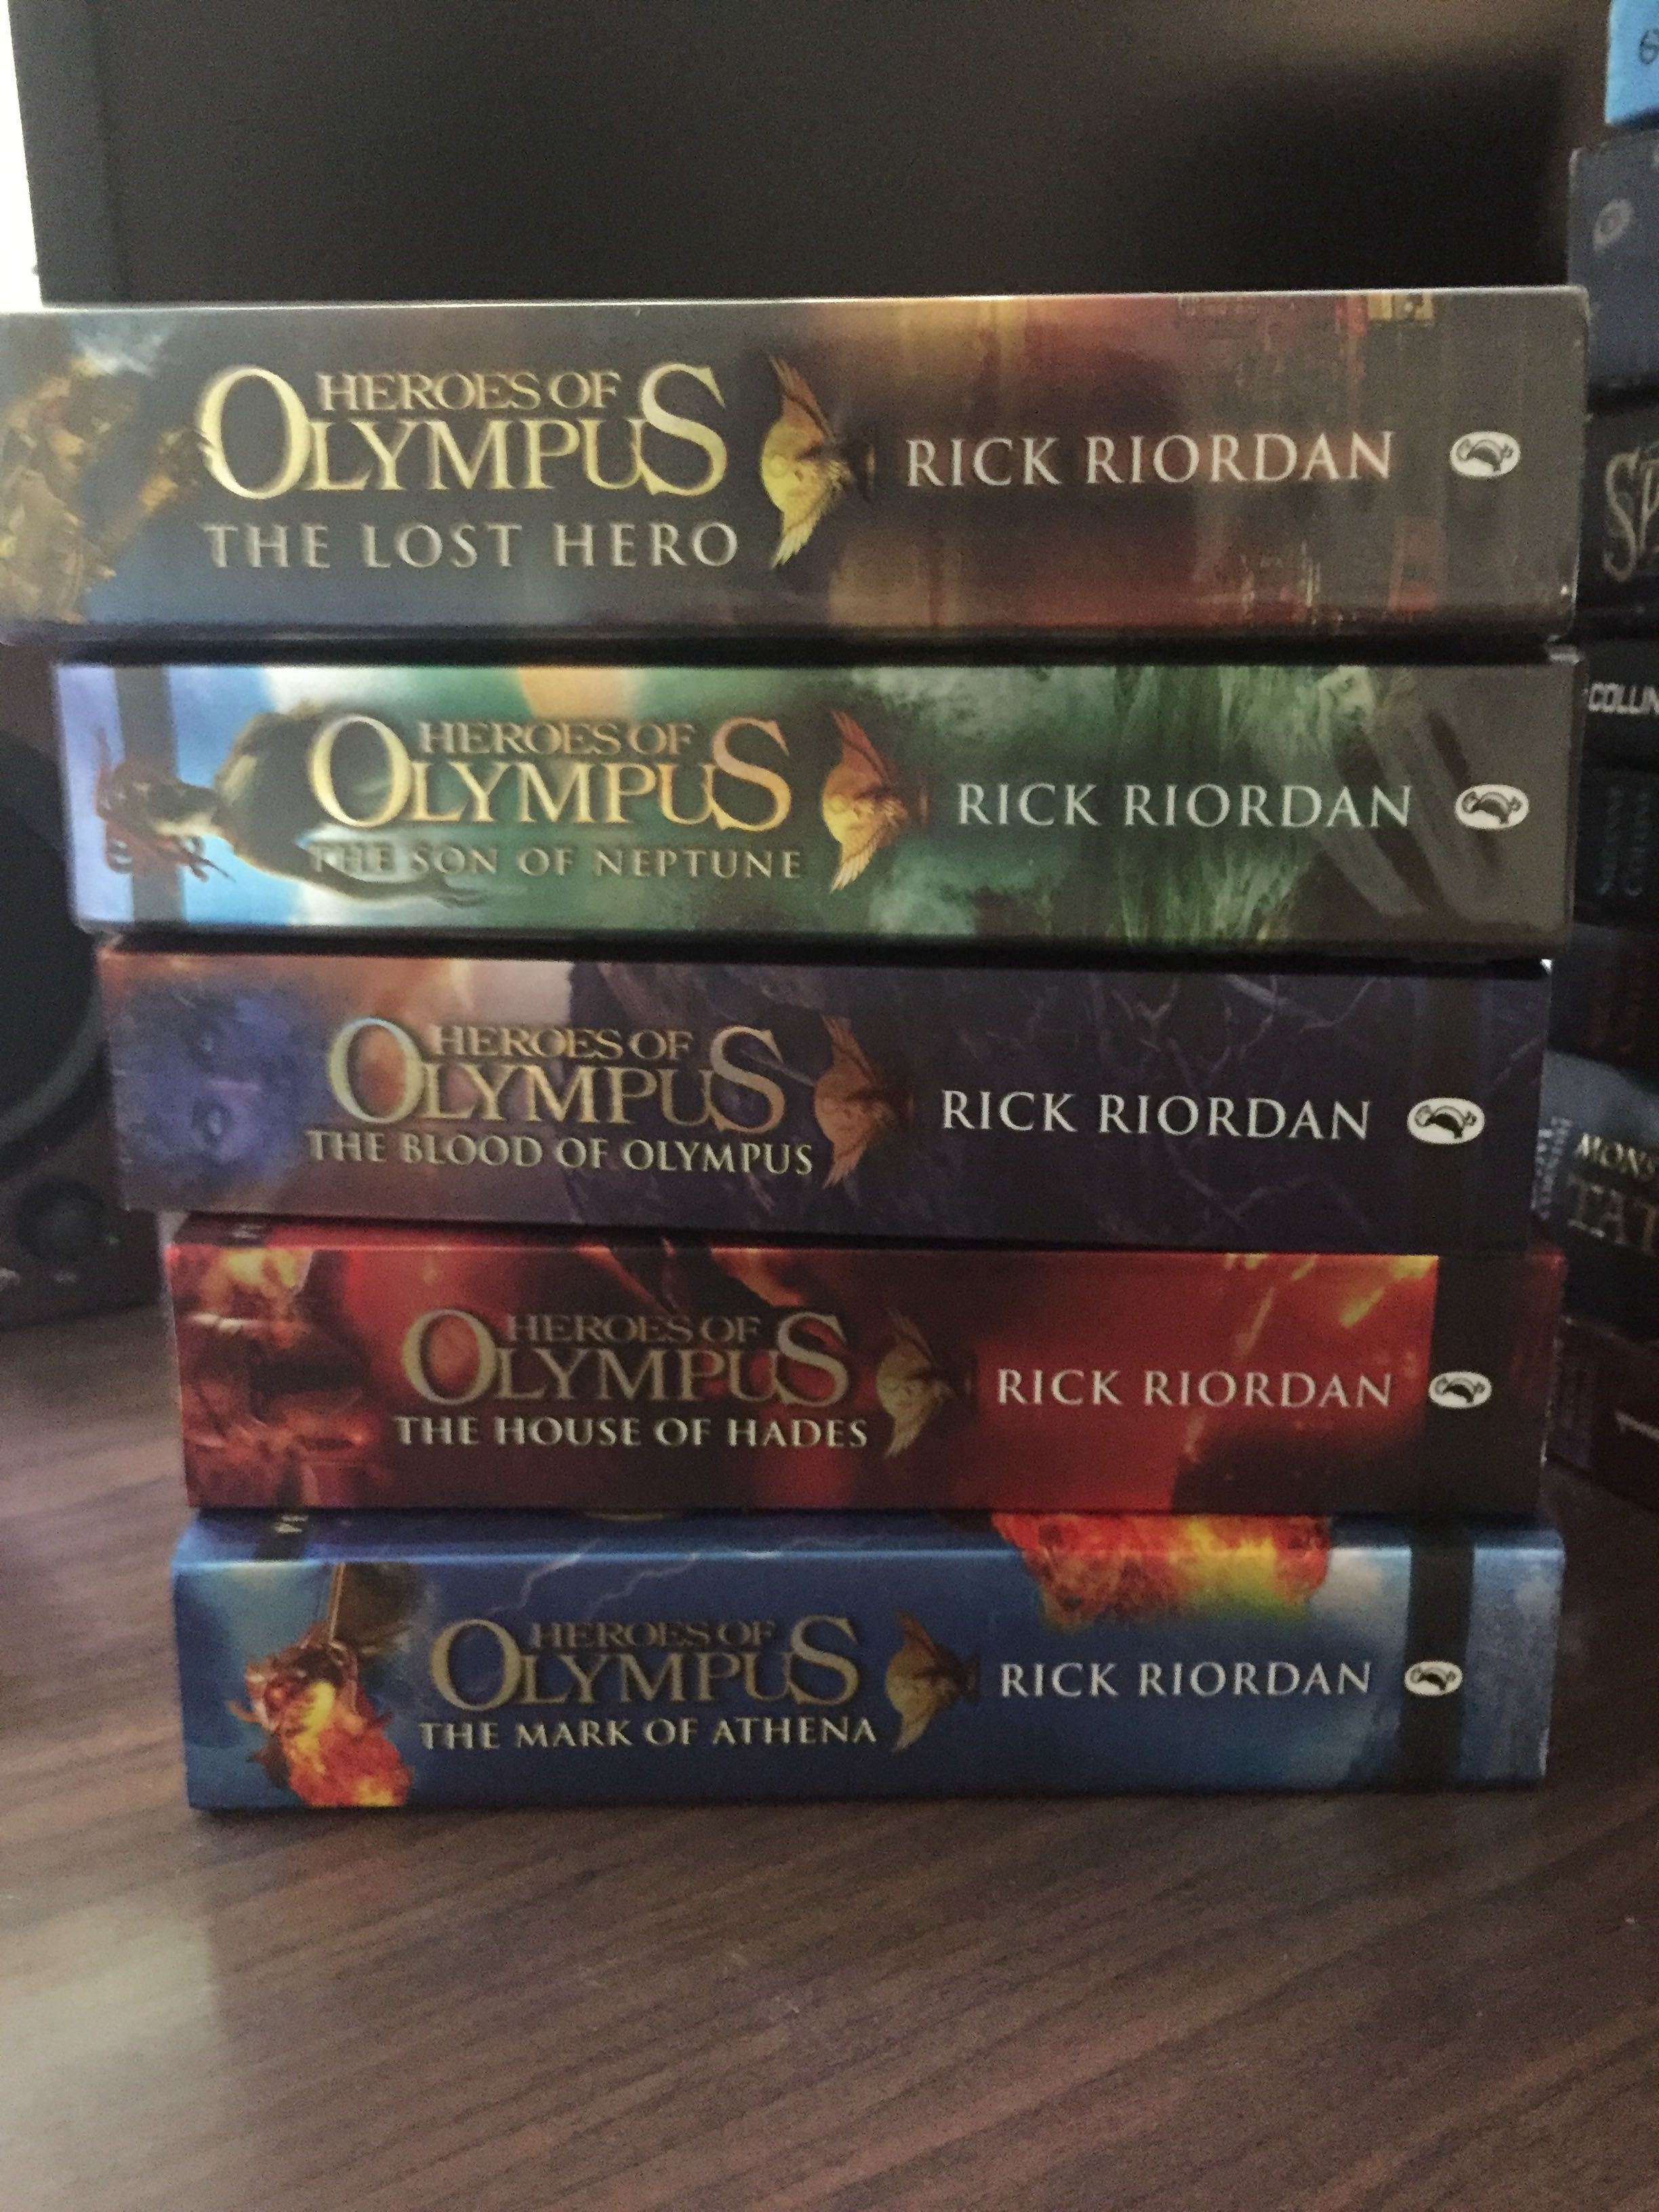 The Heroes of Olympus complete series (5 books)